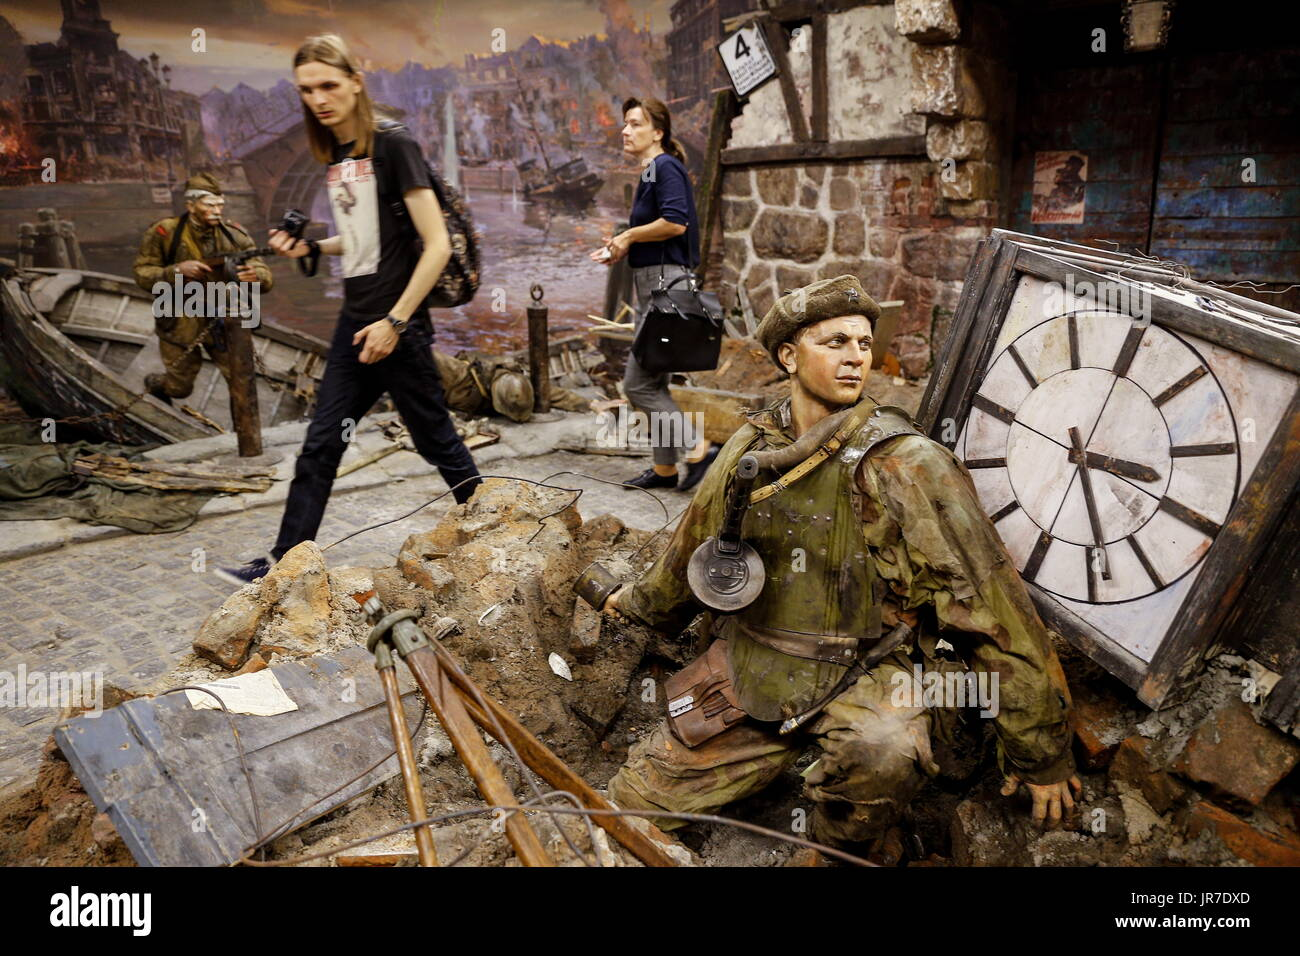 Kaliningrad Region, Russia. 3rd Aug, 2017. Visitors view a 3-dimensional panoramic exhibition titled 'Konigsberg 1945: the Final Assault' at the Kaliningrad Region Museum of History and Arts; the 360-degree display which depicts the April 1945 assault by the Red Army on the city of Konigsberg in WWII, is an artwork by the Nevsky Batalist team led by Dmitry Poshtarenko. Credit: Vitaly Nevar/TASS/Alamy Live News - Stock Image